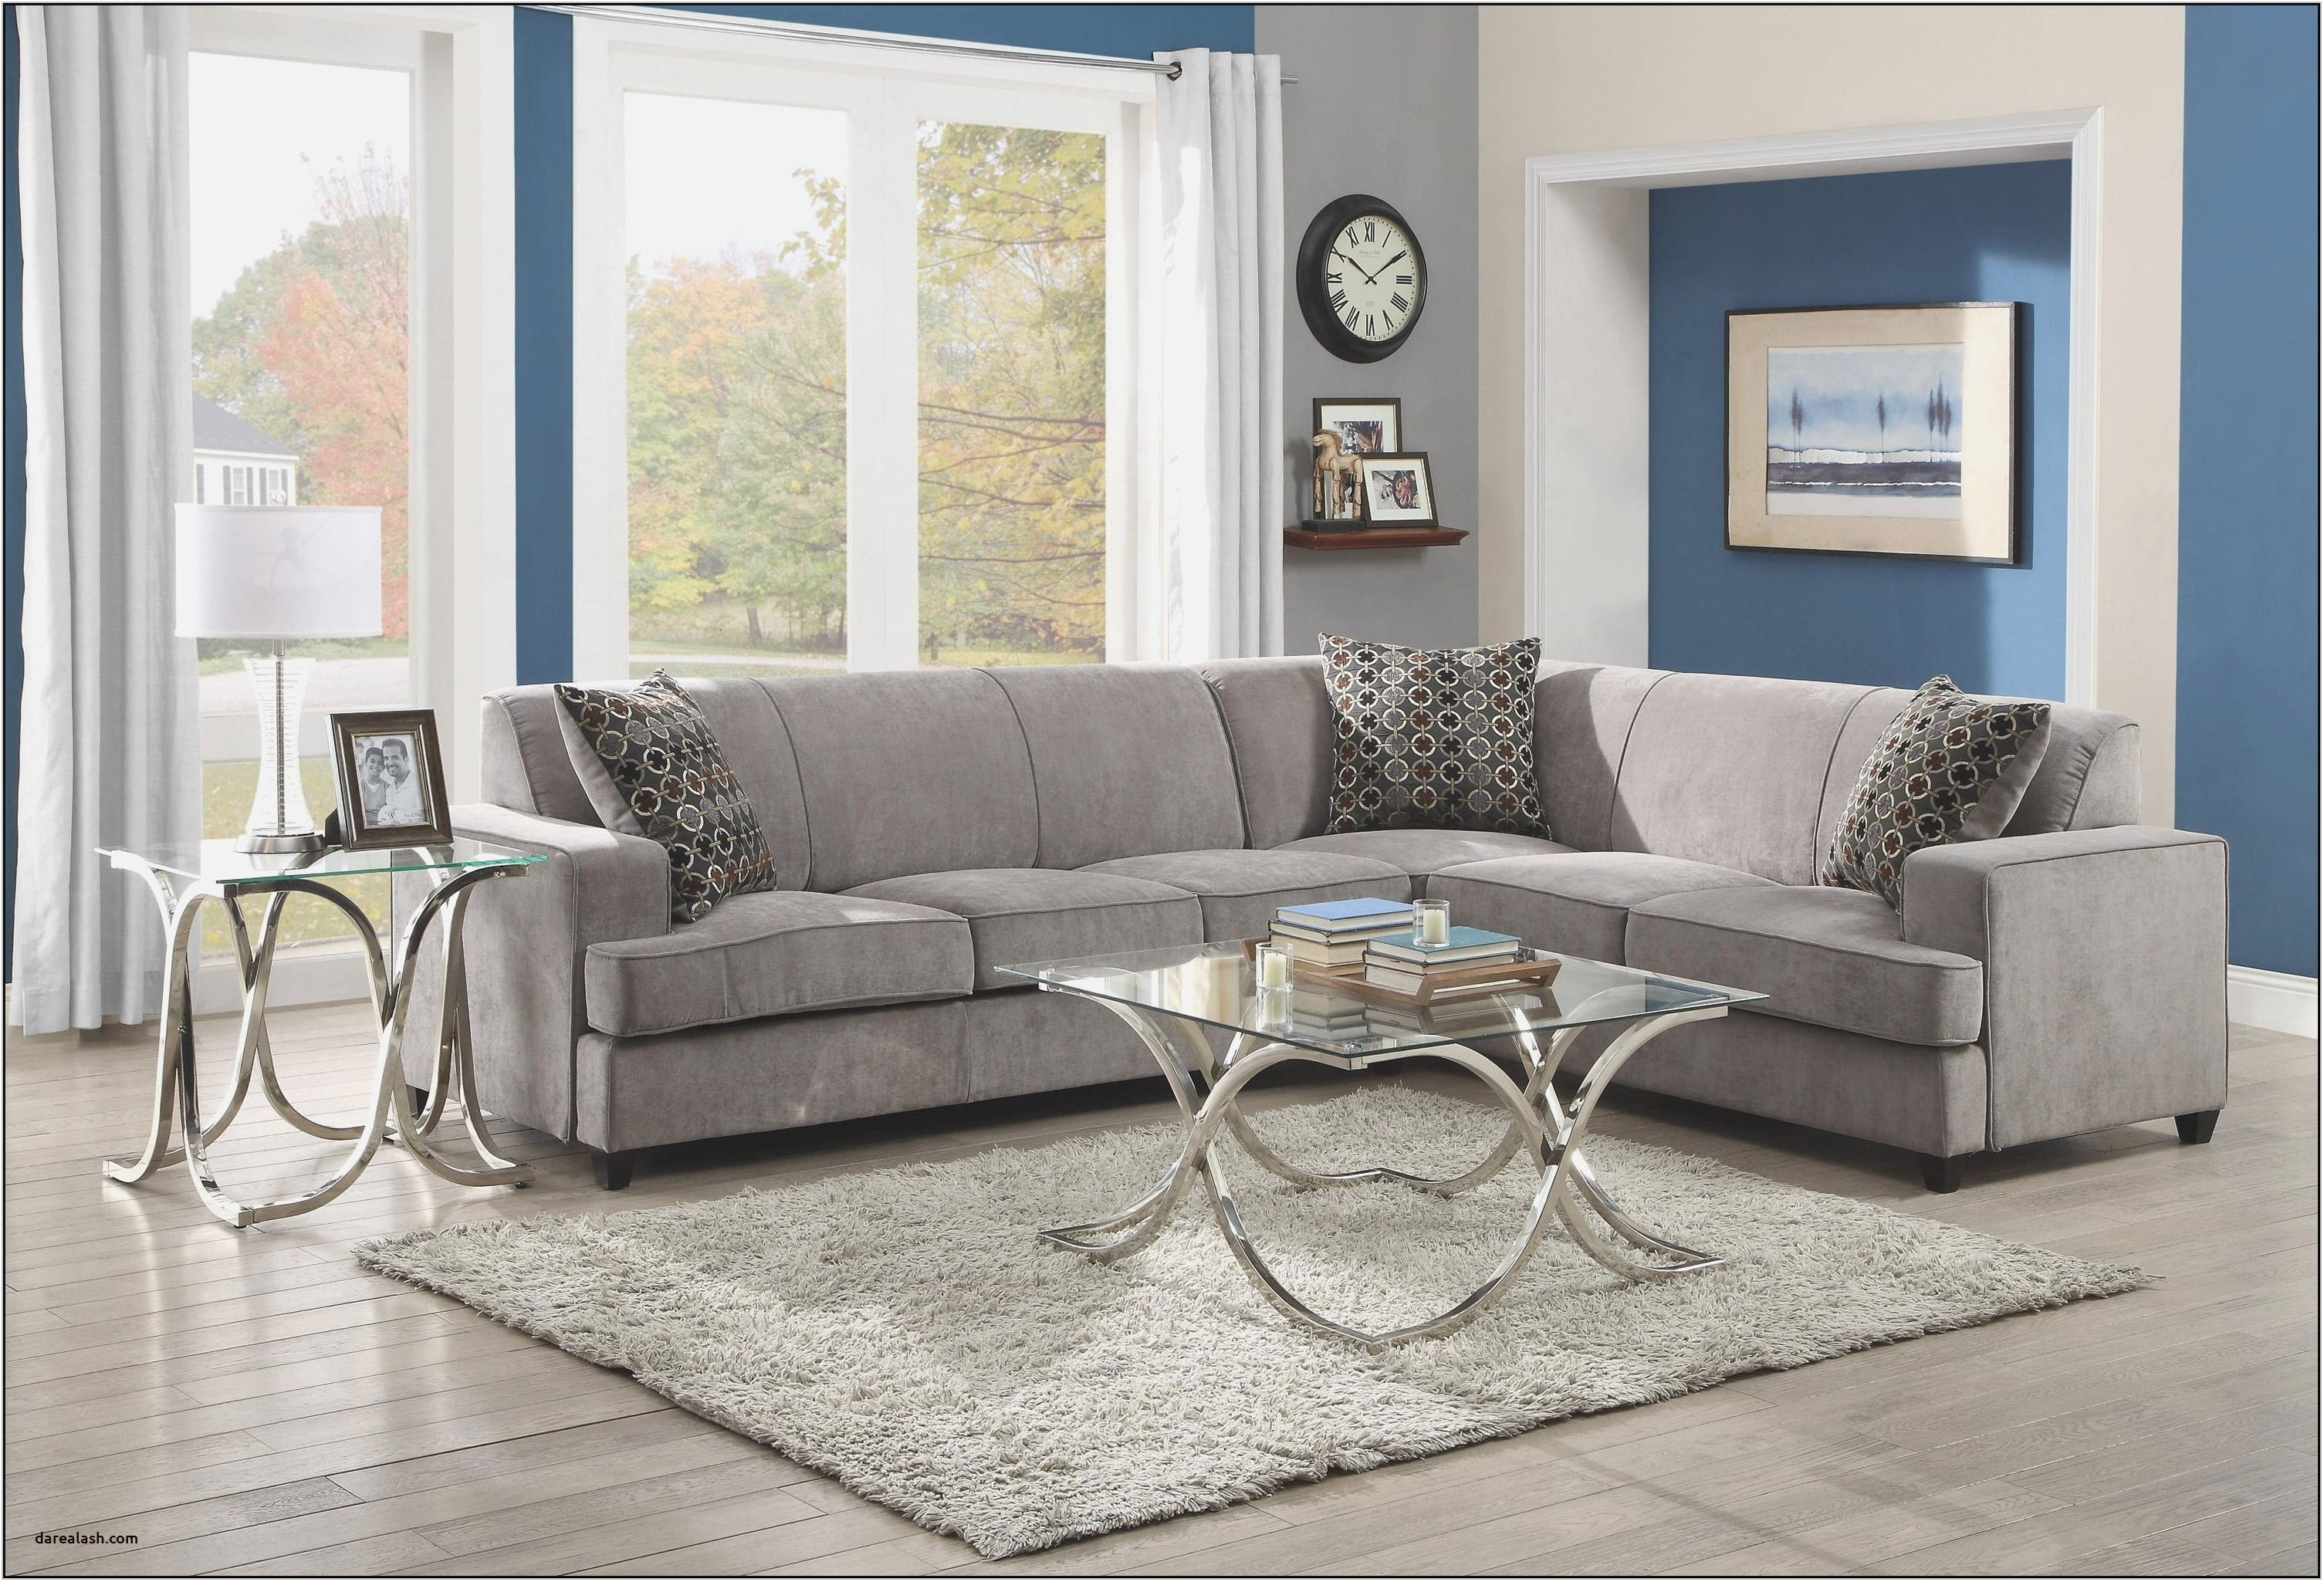 Value City Furniture Living Room Furniture